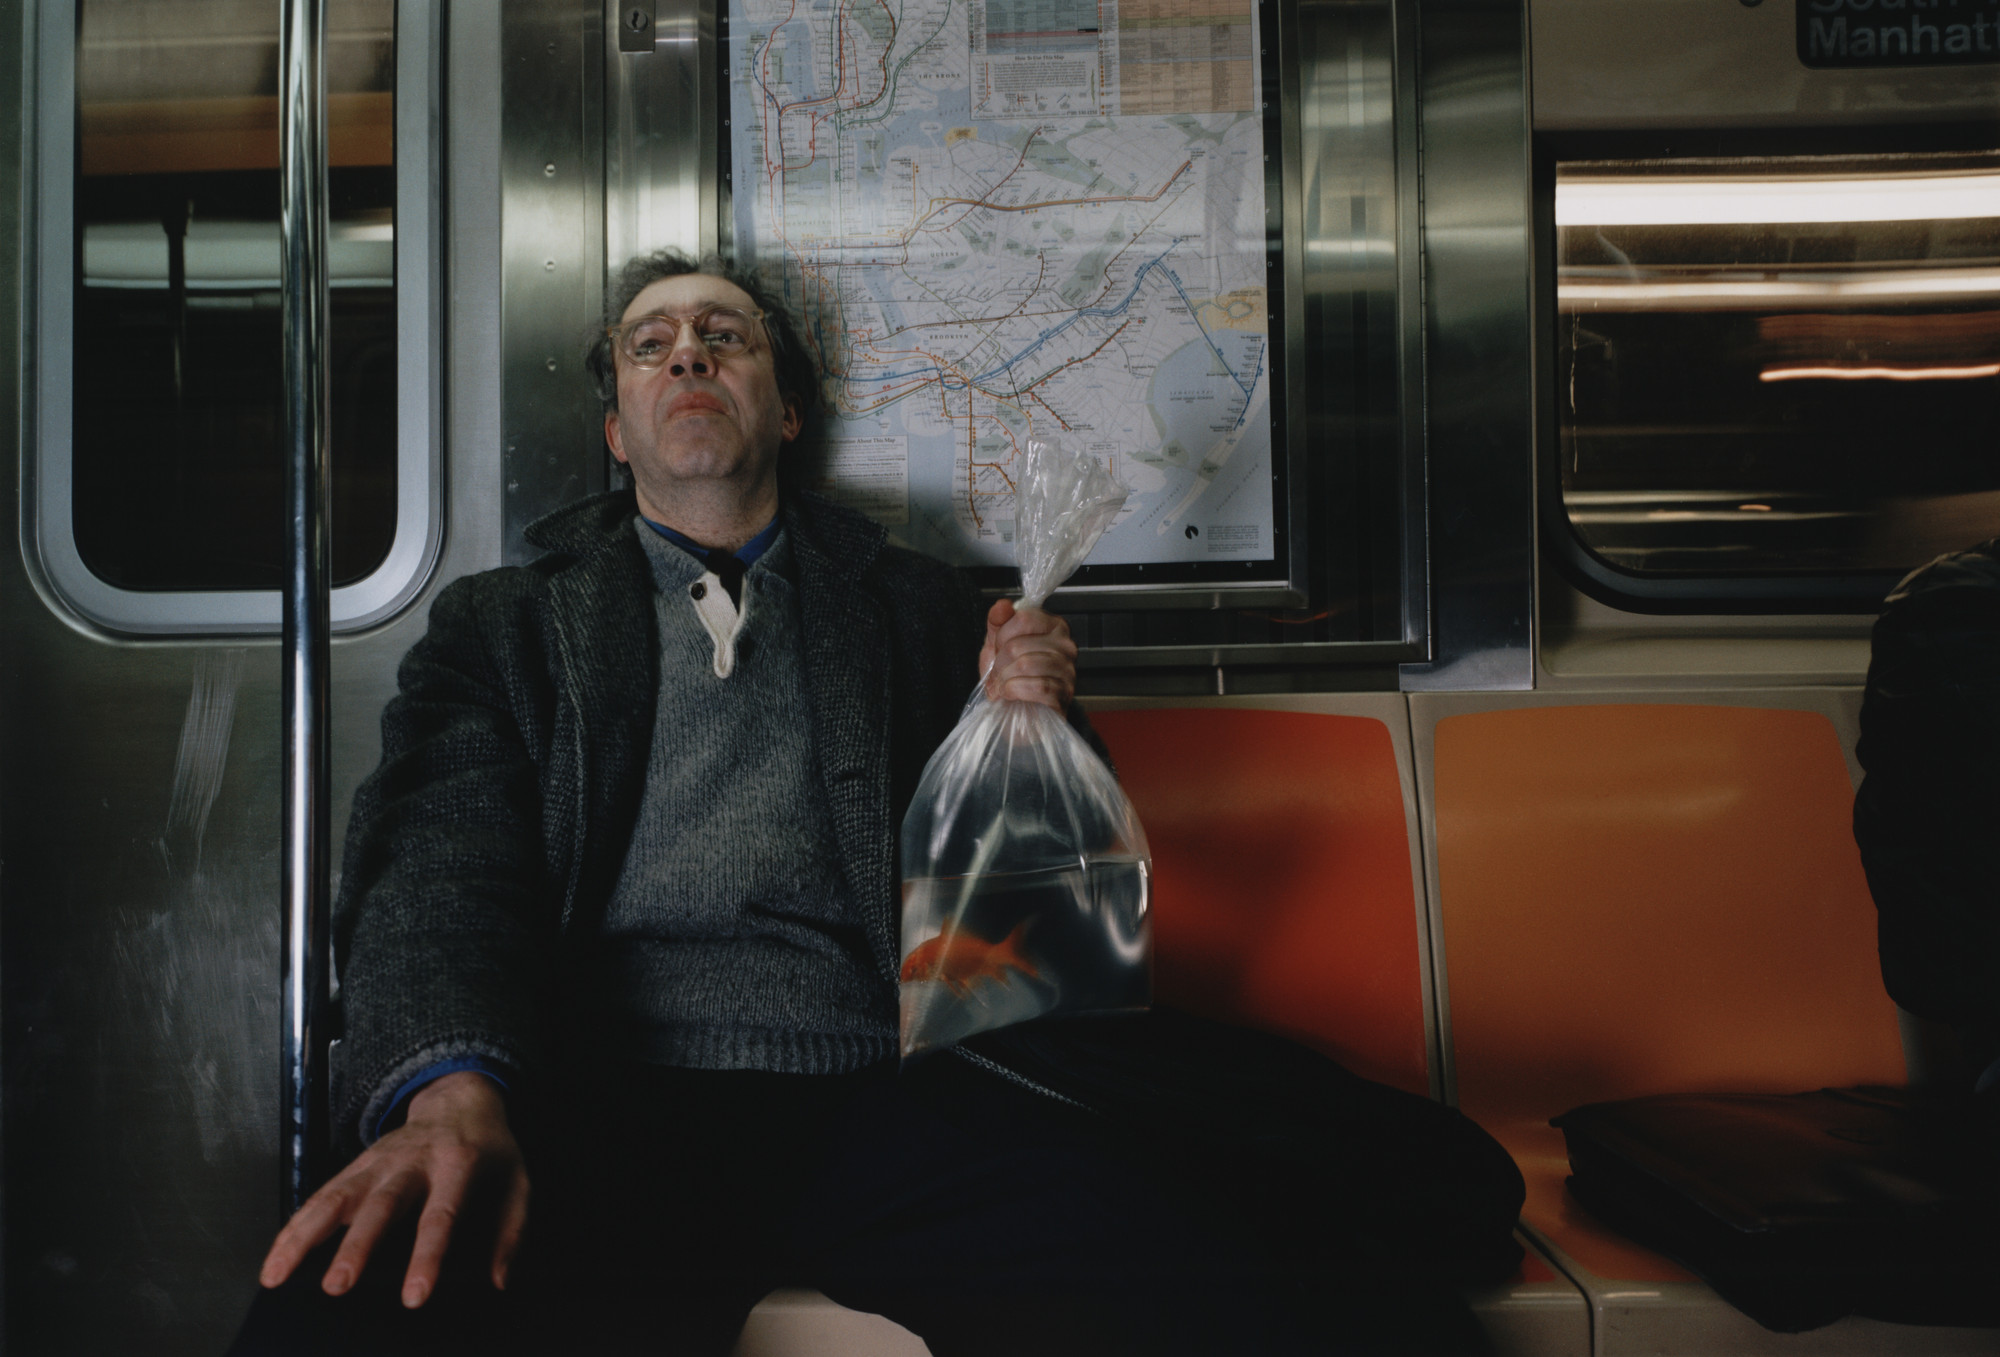 Philip-Lorca diCorcia. Igor. 1987. Chromogenic color print (Ektacolor), 15 11/16 × 22 7/8″ (39.8 × 58.1 cm). The Museum of Modern Art, New York. Gift of Carol and Arthur Goldberg